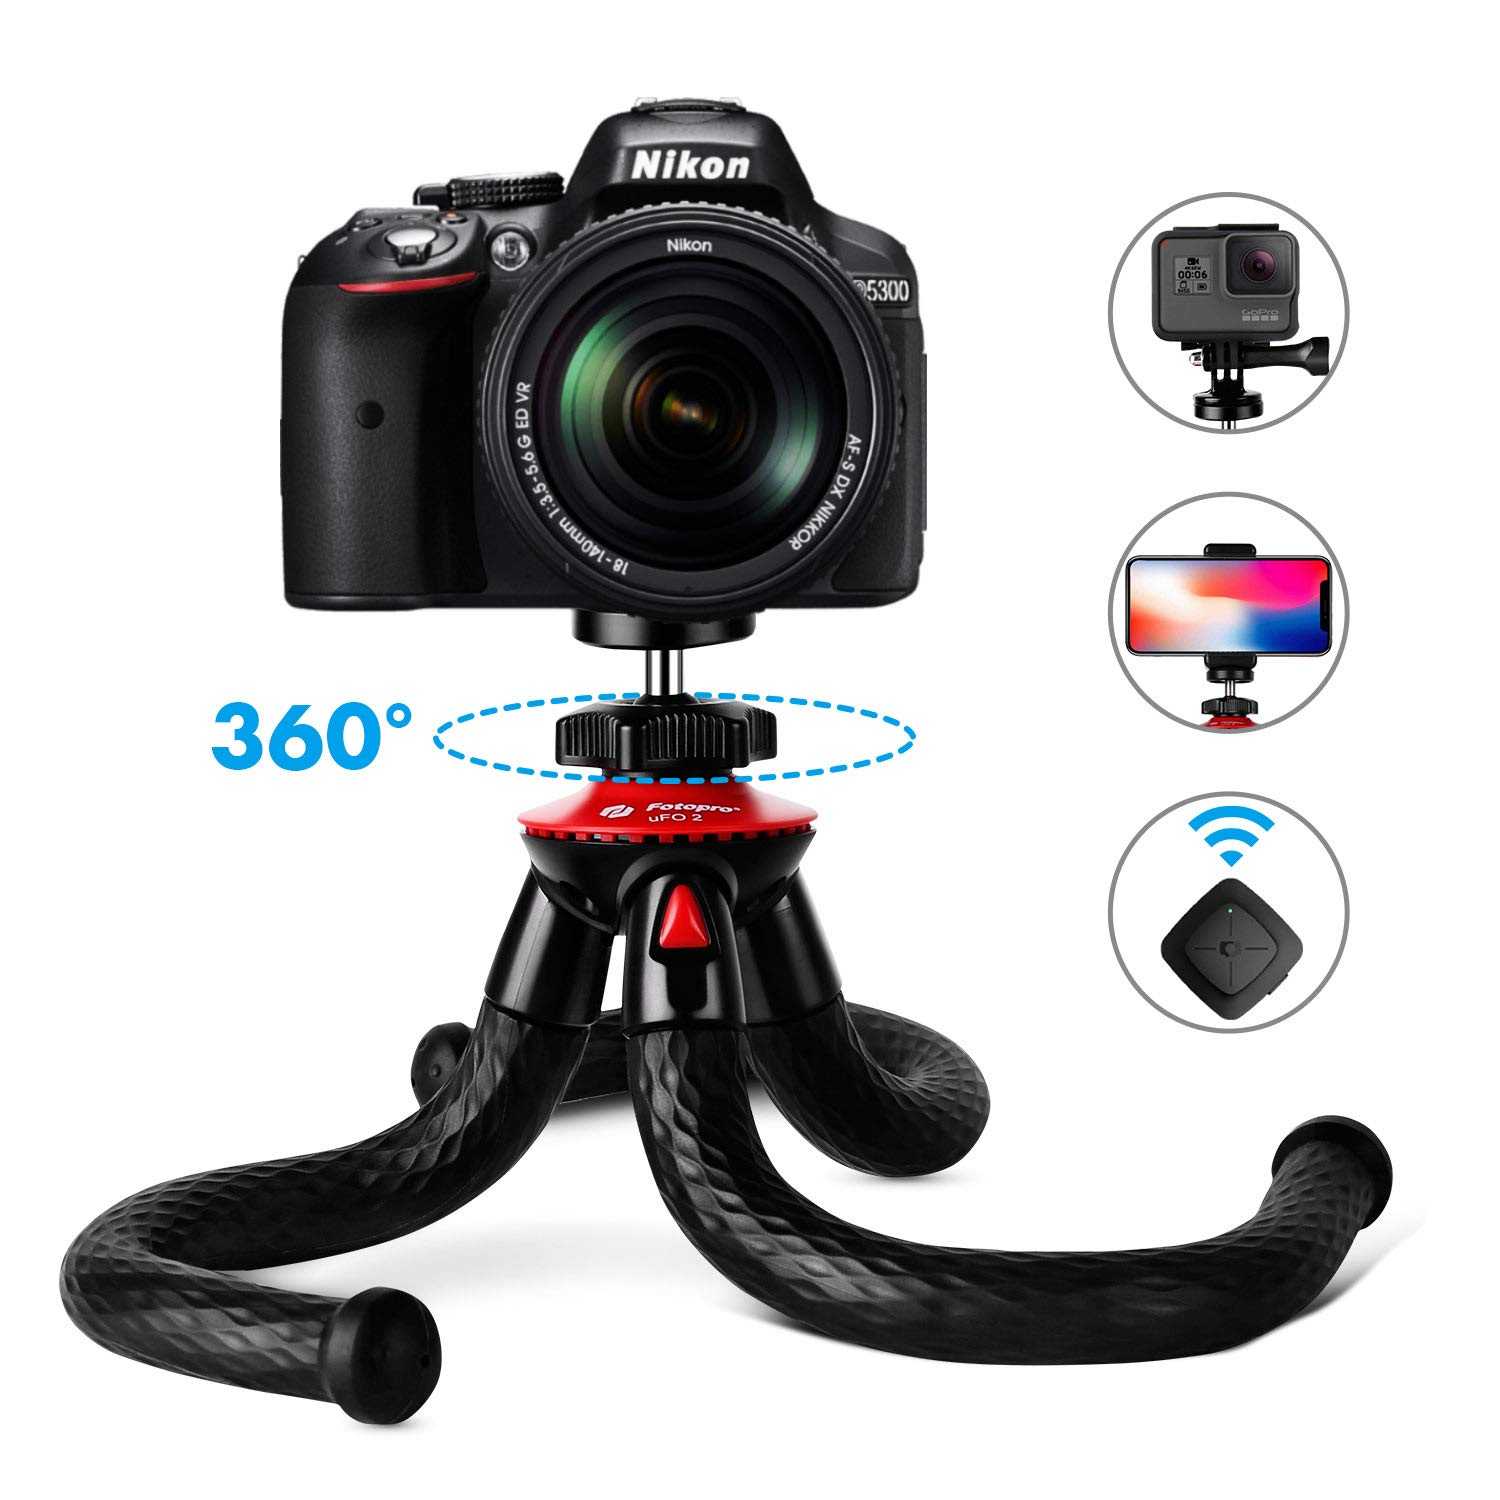 Fotopro UFO2 Set Tripods for Phone, 12'' Flexible Tripod with Bluetooth for iPhone Xs, Samsung, Waterproof Tripod for Time-Lapse Photography, 360 Degree Spherical Tripod for GoPro, Black by Fotopro